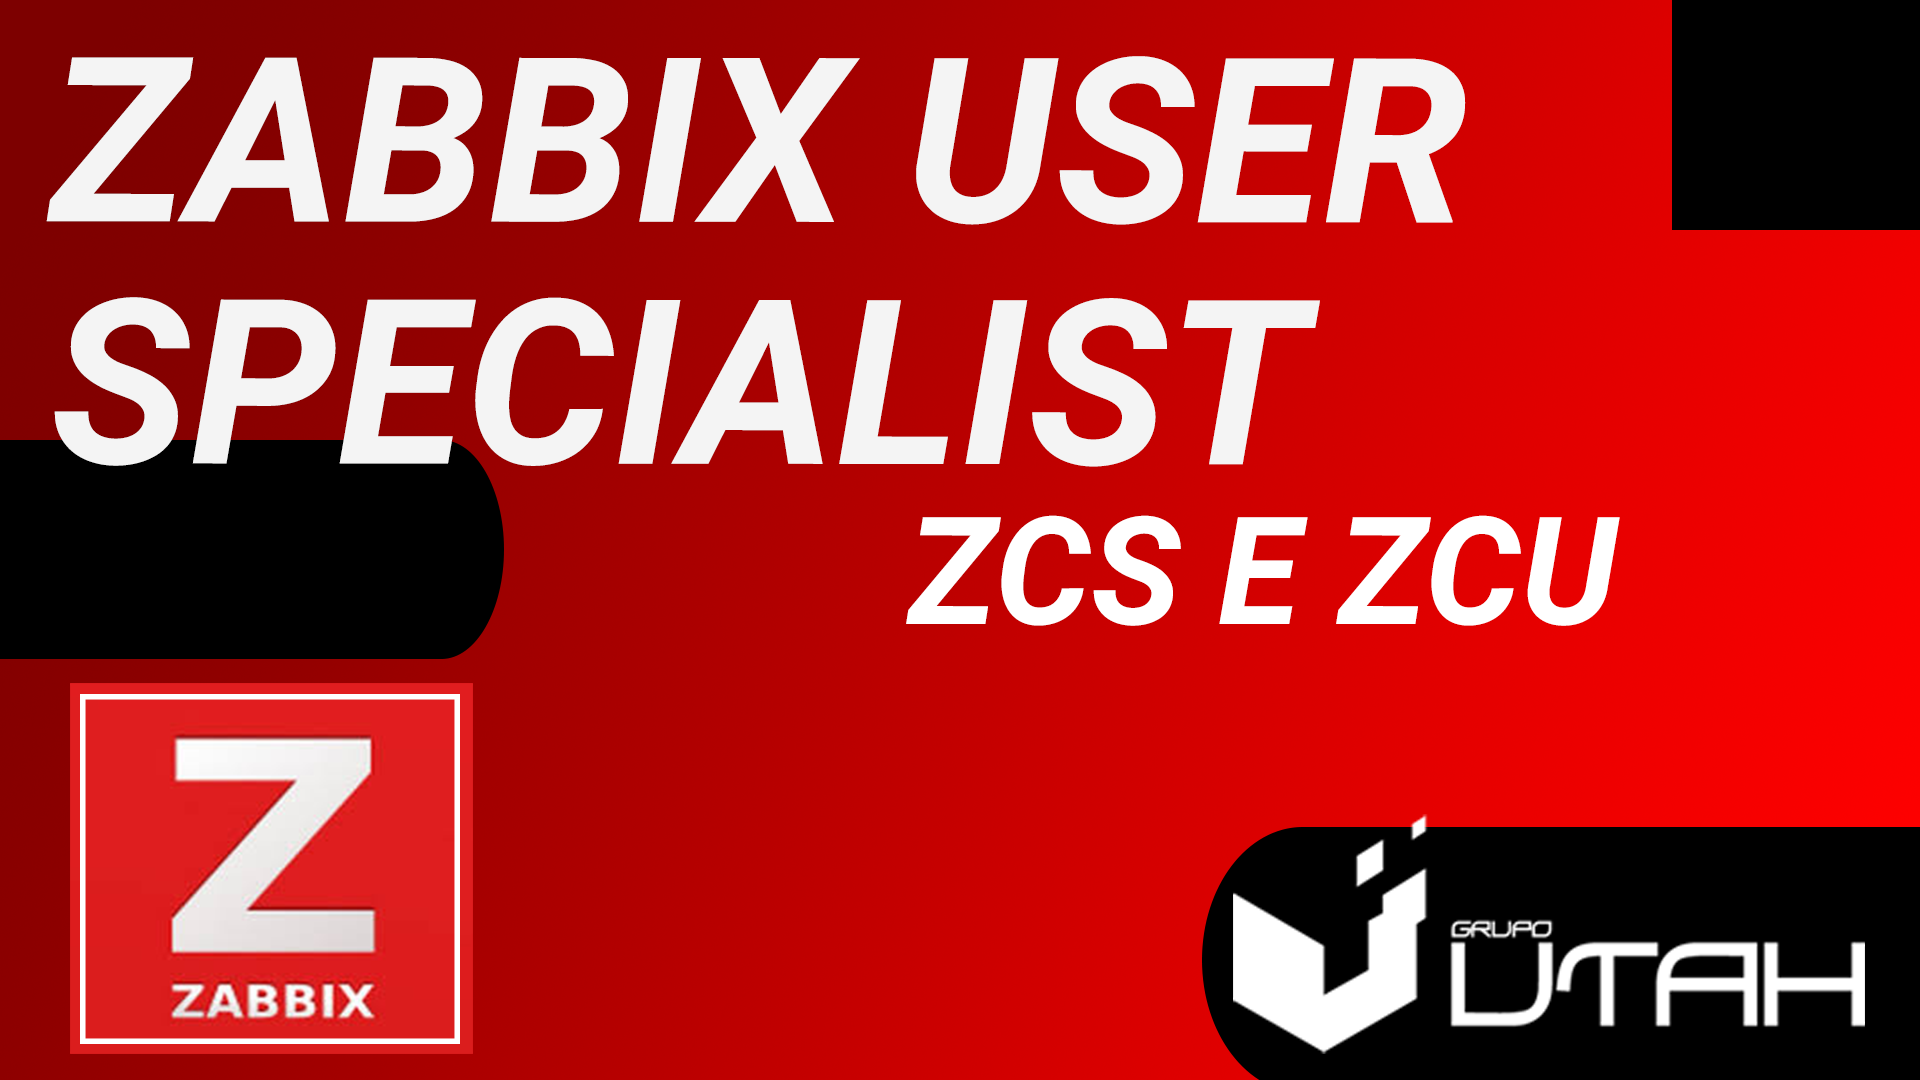 ZBX - USER AND SPECIALIST